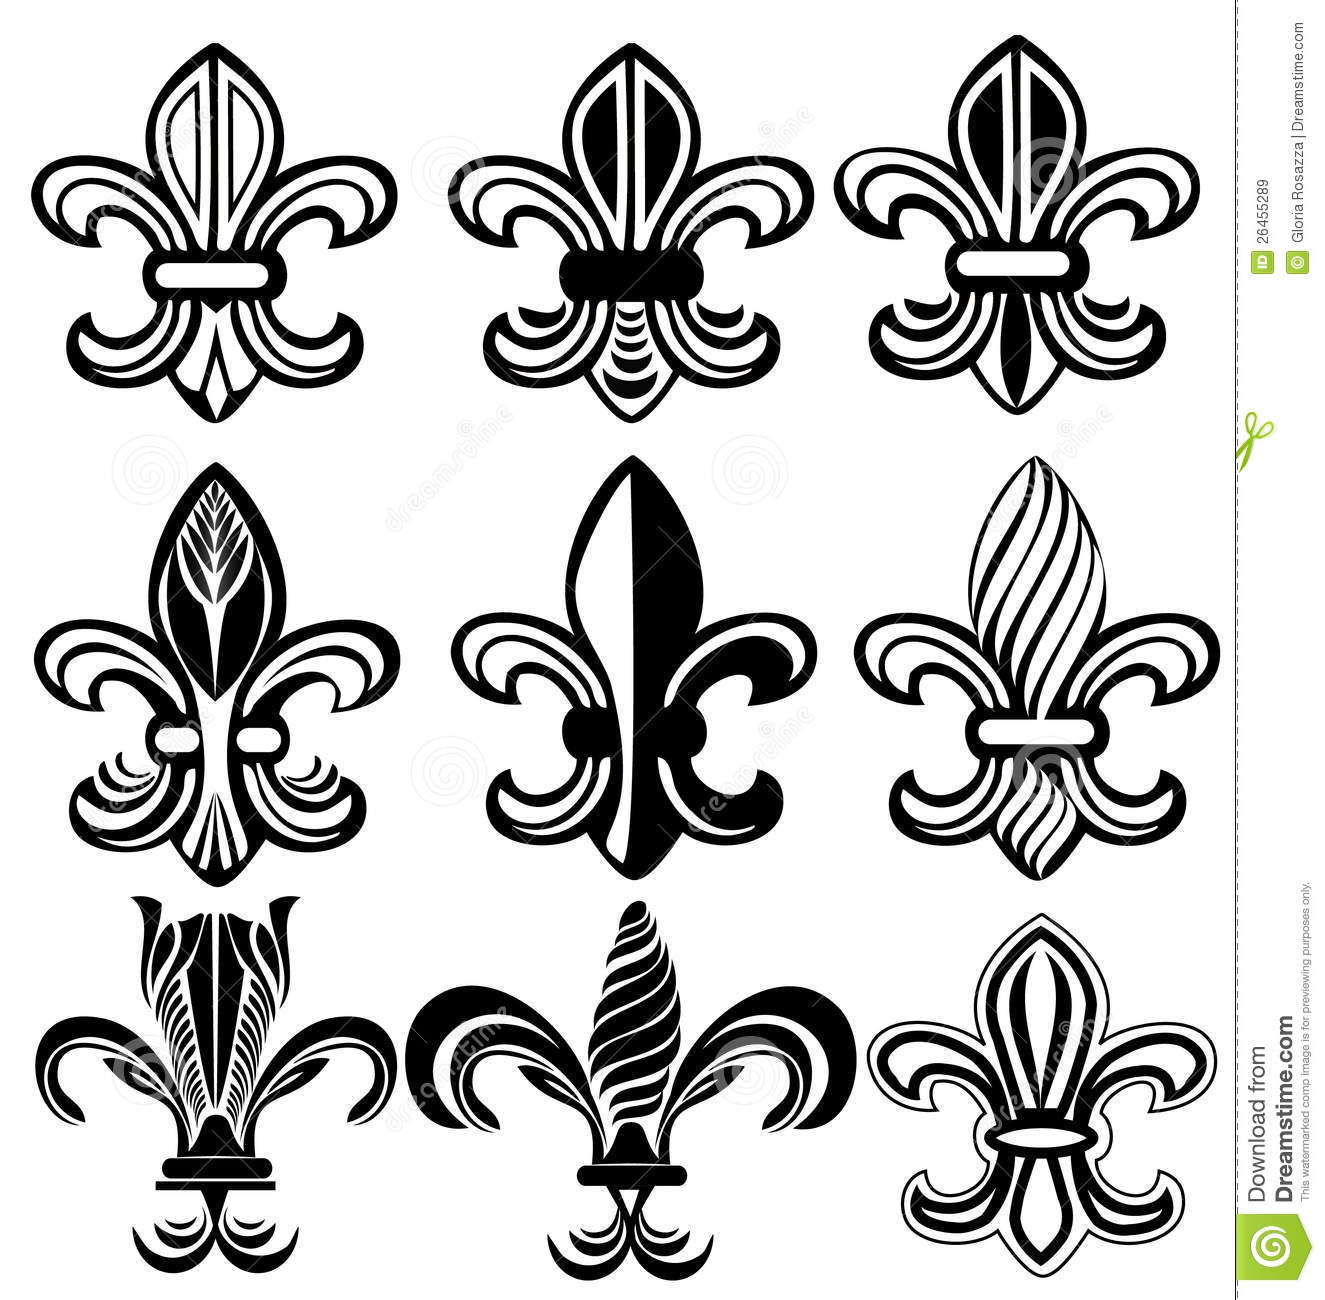 Orleans stock illustrations 2315 orleans stock illustrations fleur de lis new orleans symbol stock design vector eps10 royalty free stock images buycottarizona Images